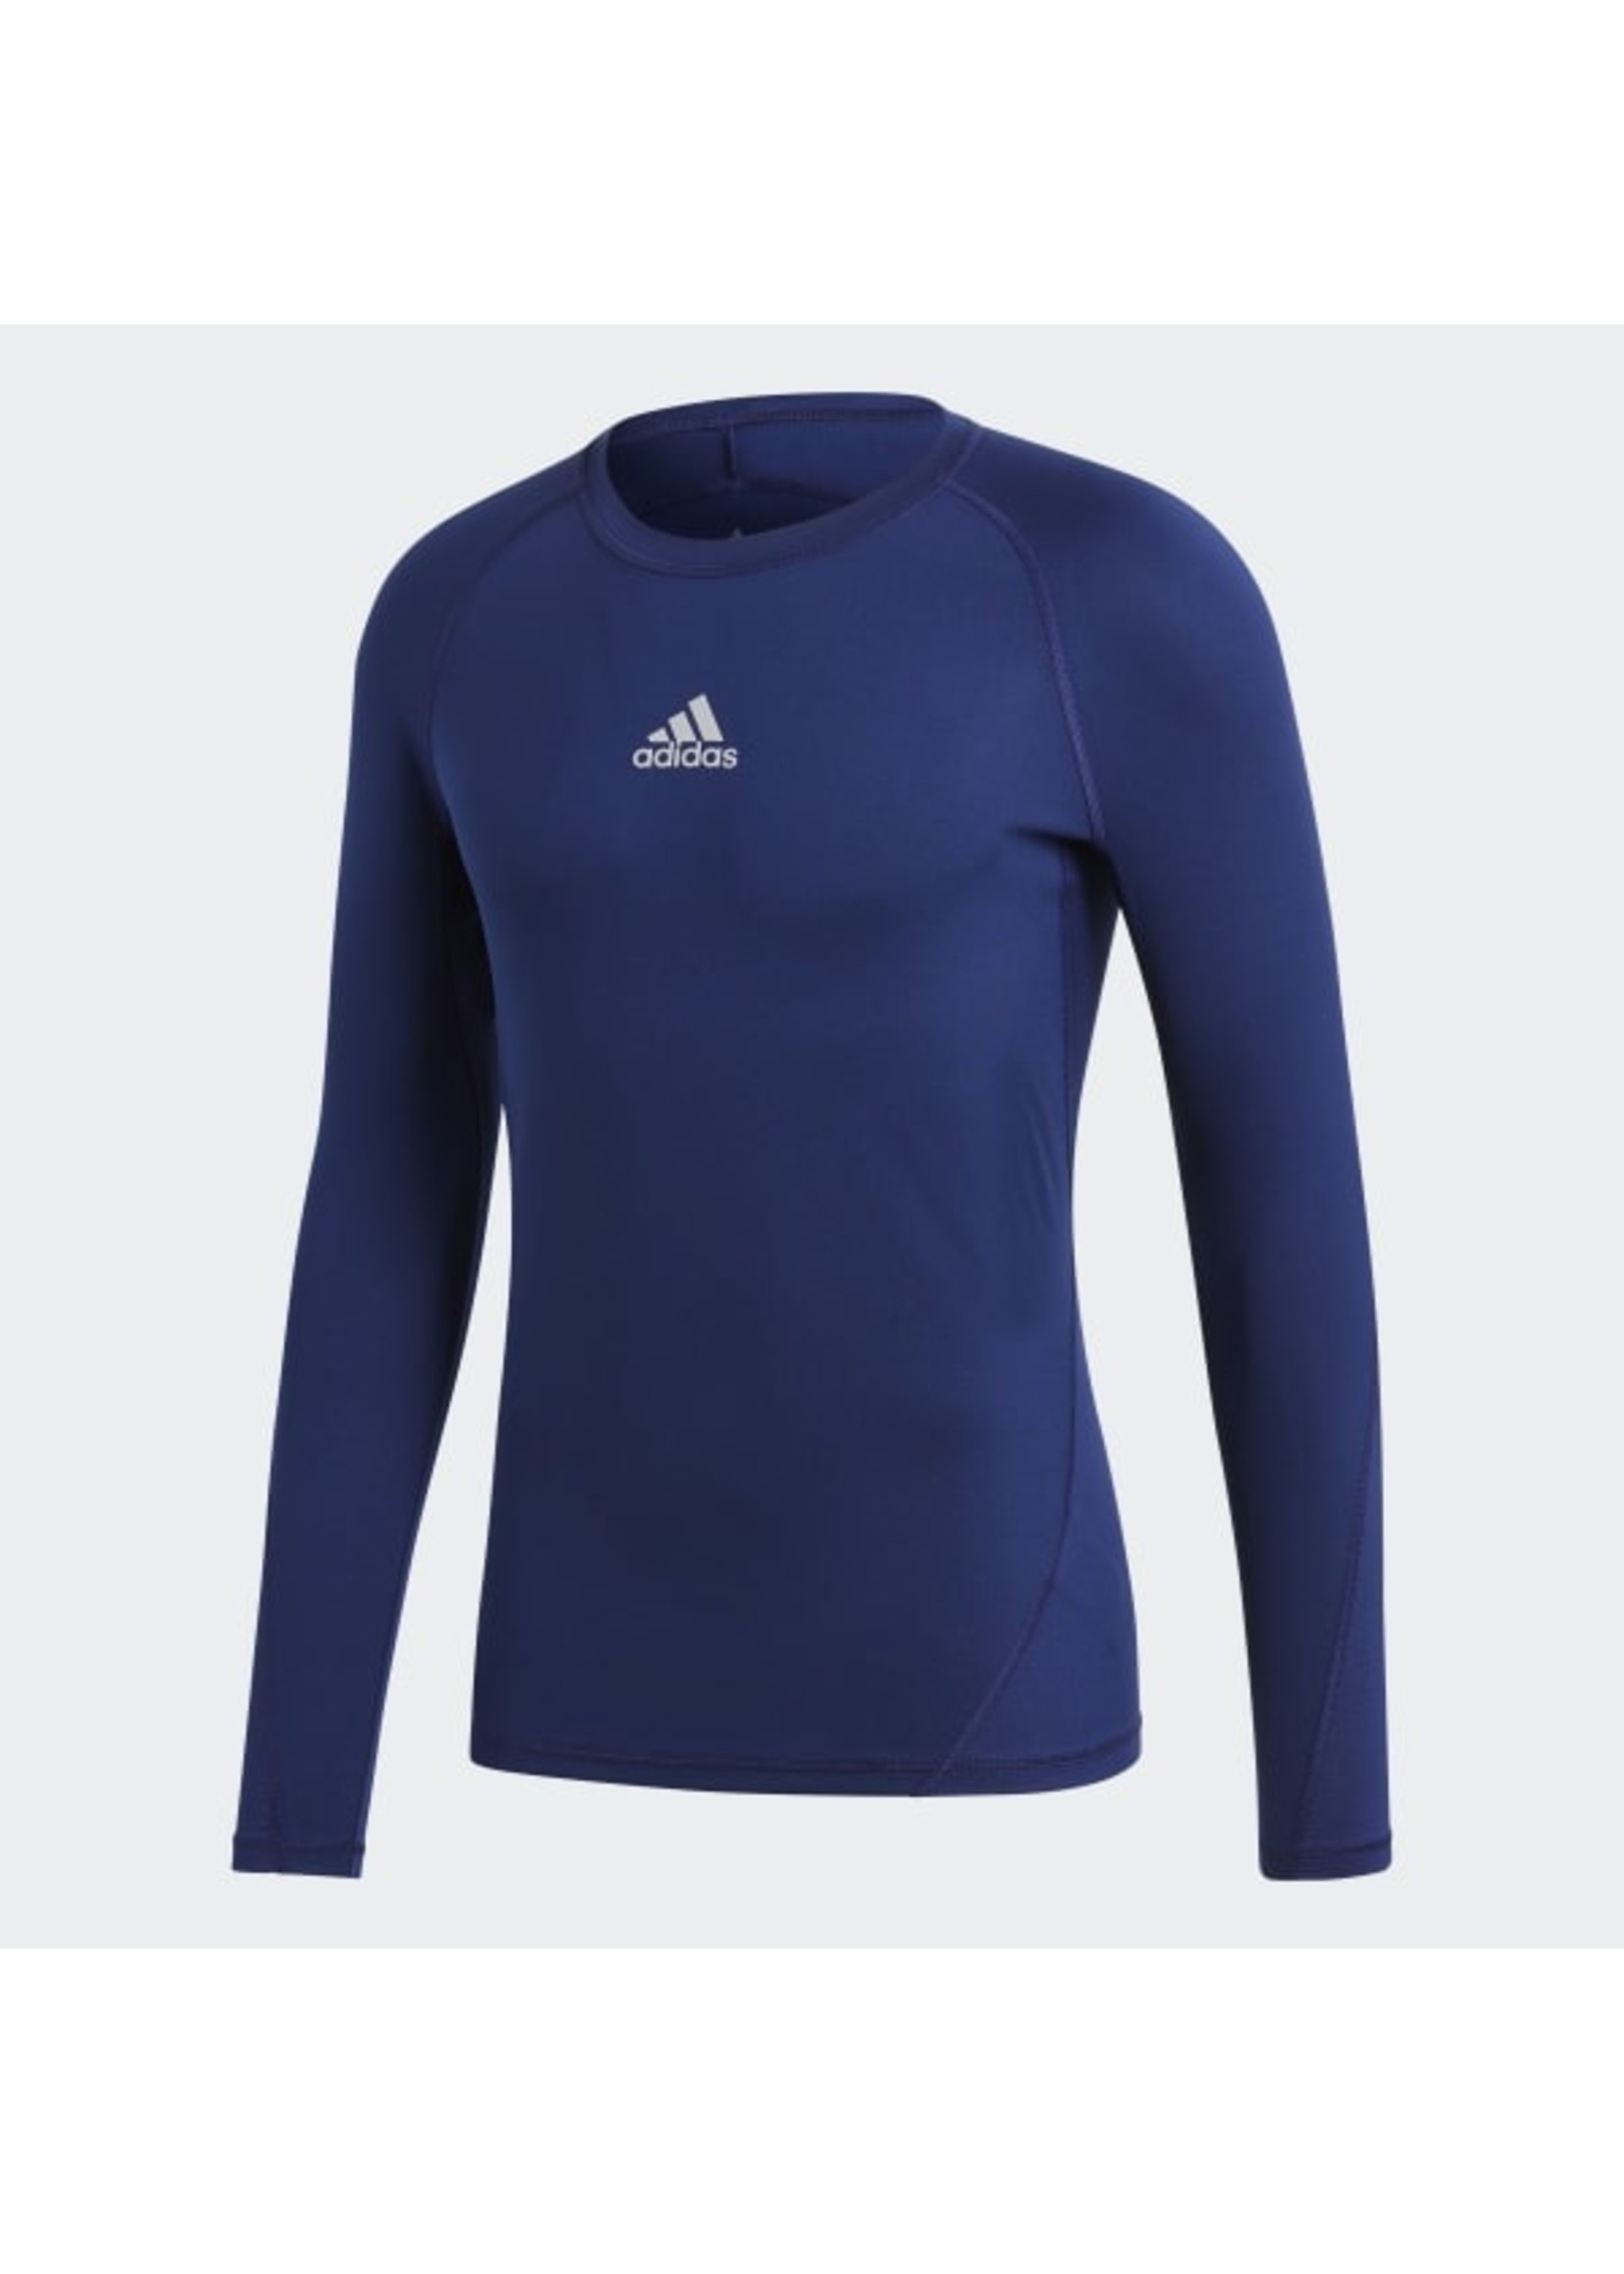 Adidas Compression Navy Long Sleeve Adult